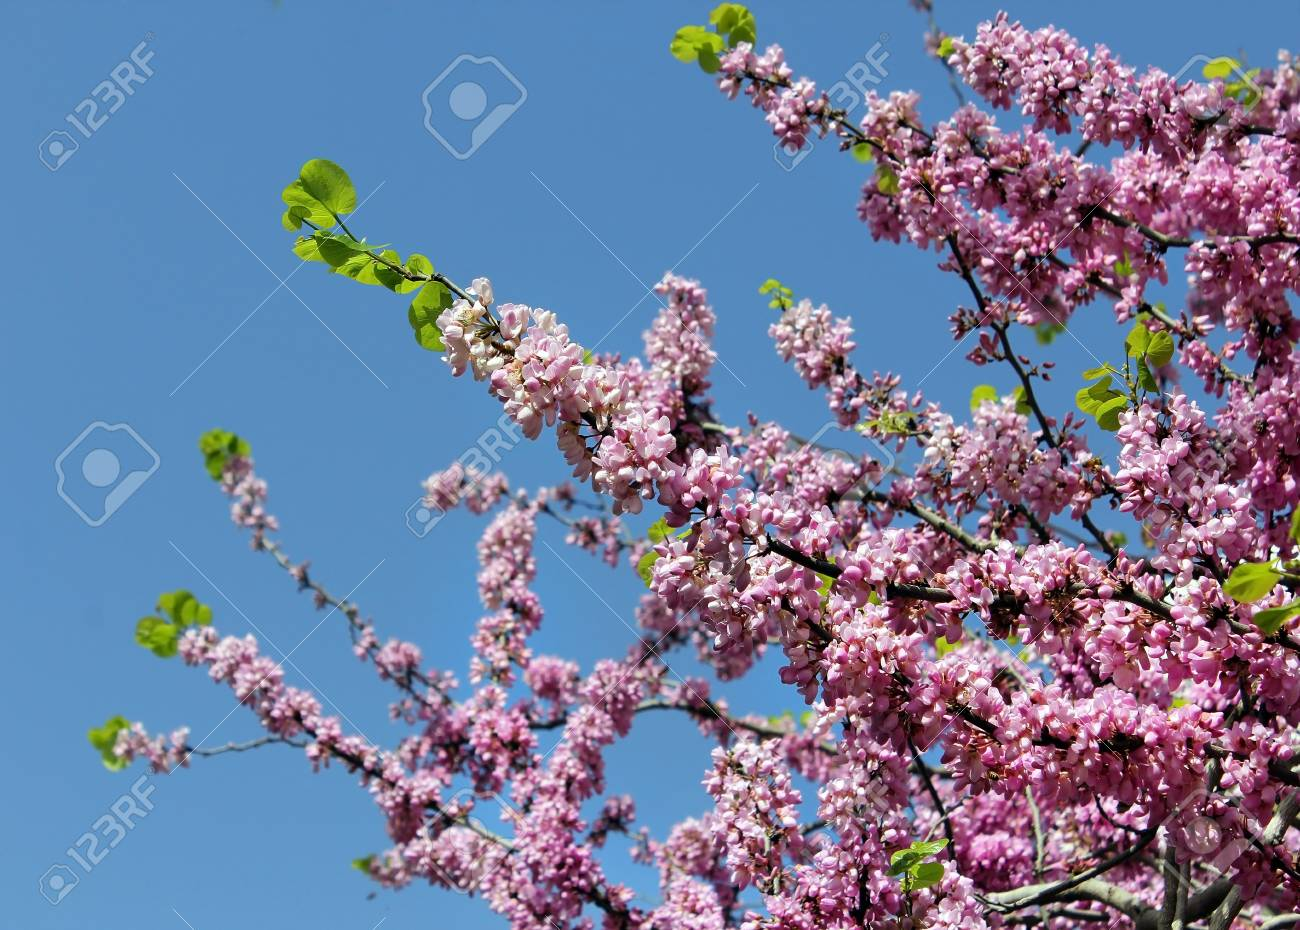 beautiful flowering tree against the bright blue sky  as floral background Stock Photo - 13180652